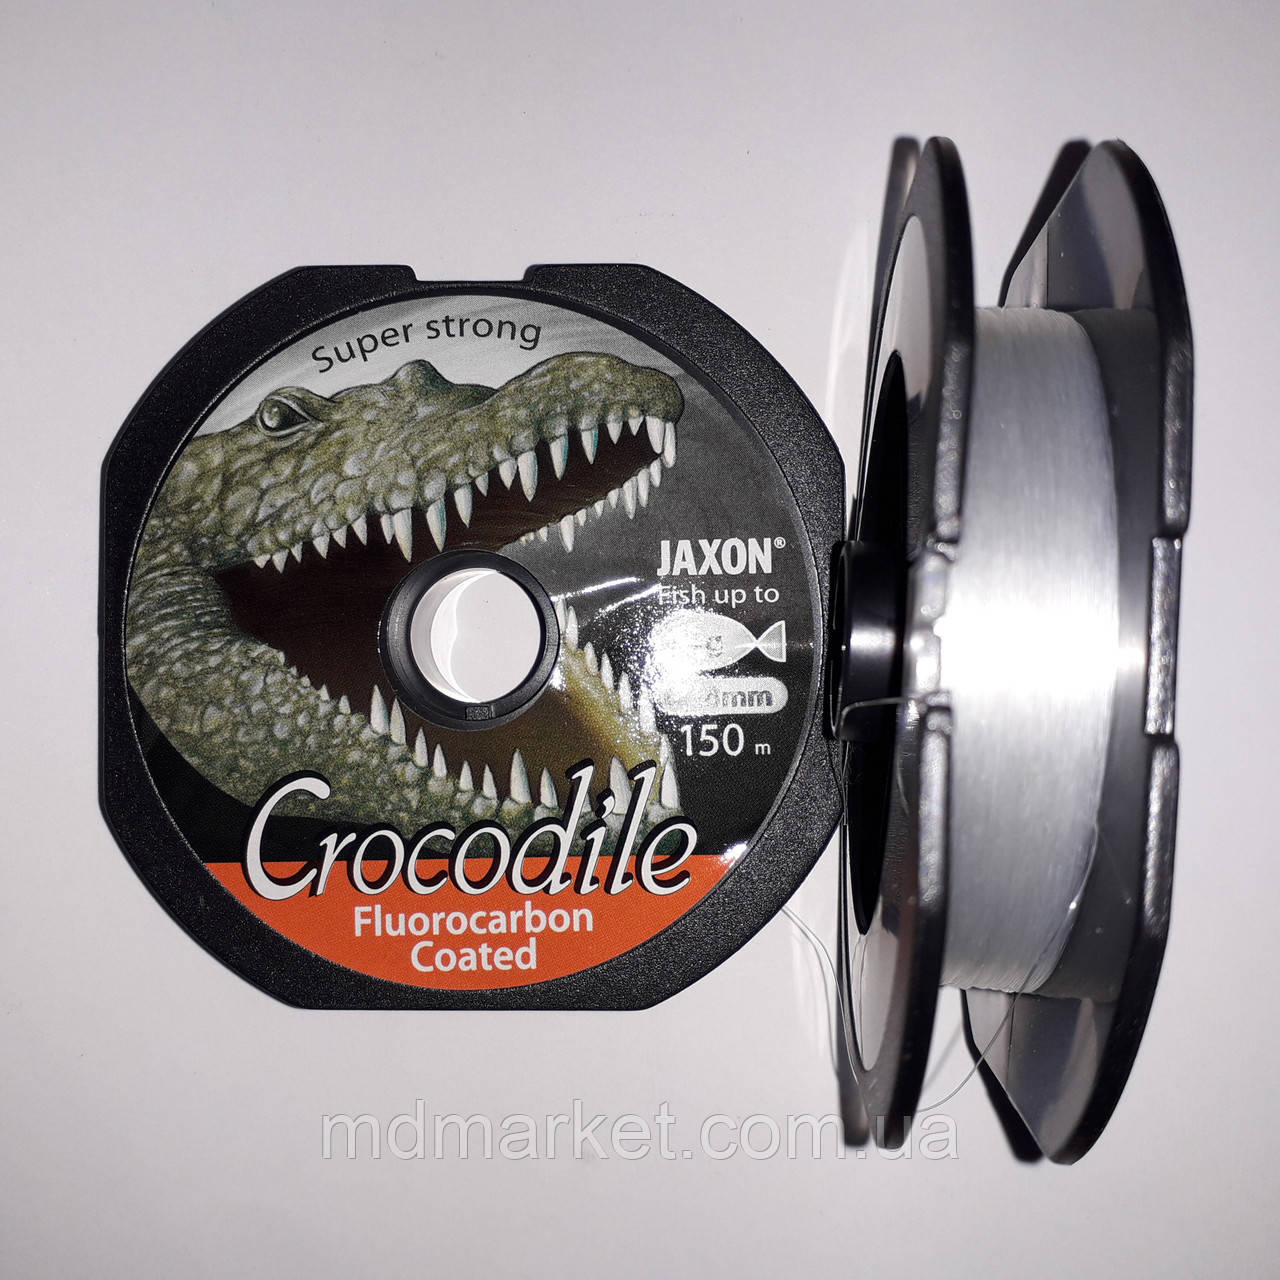 Jaxon Crocodile Fluorocarbon Coated 150m 0.30mm/16kg